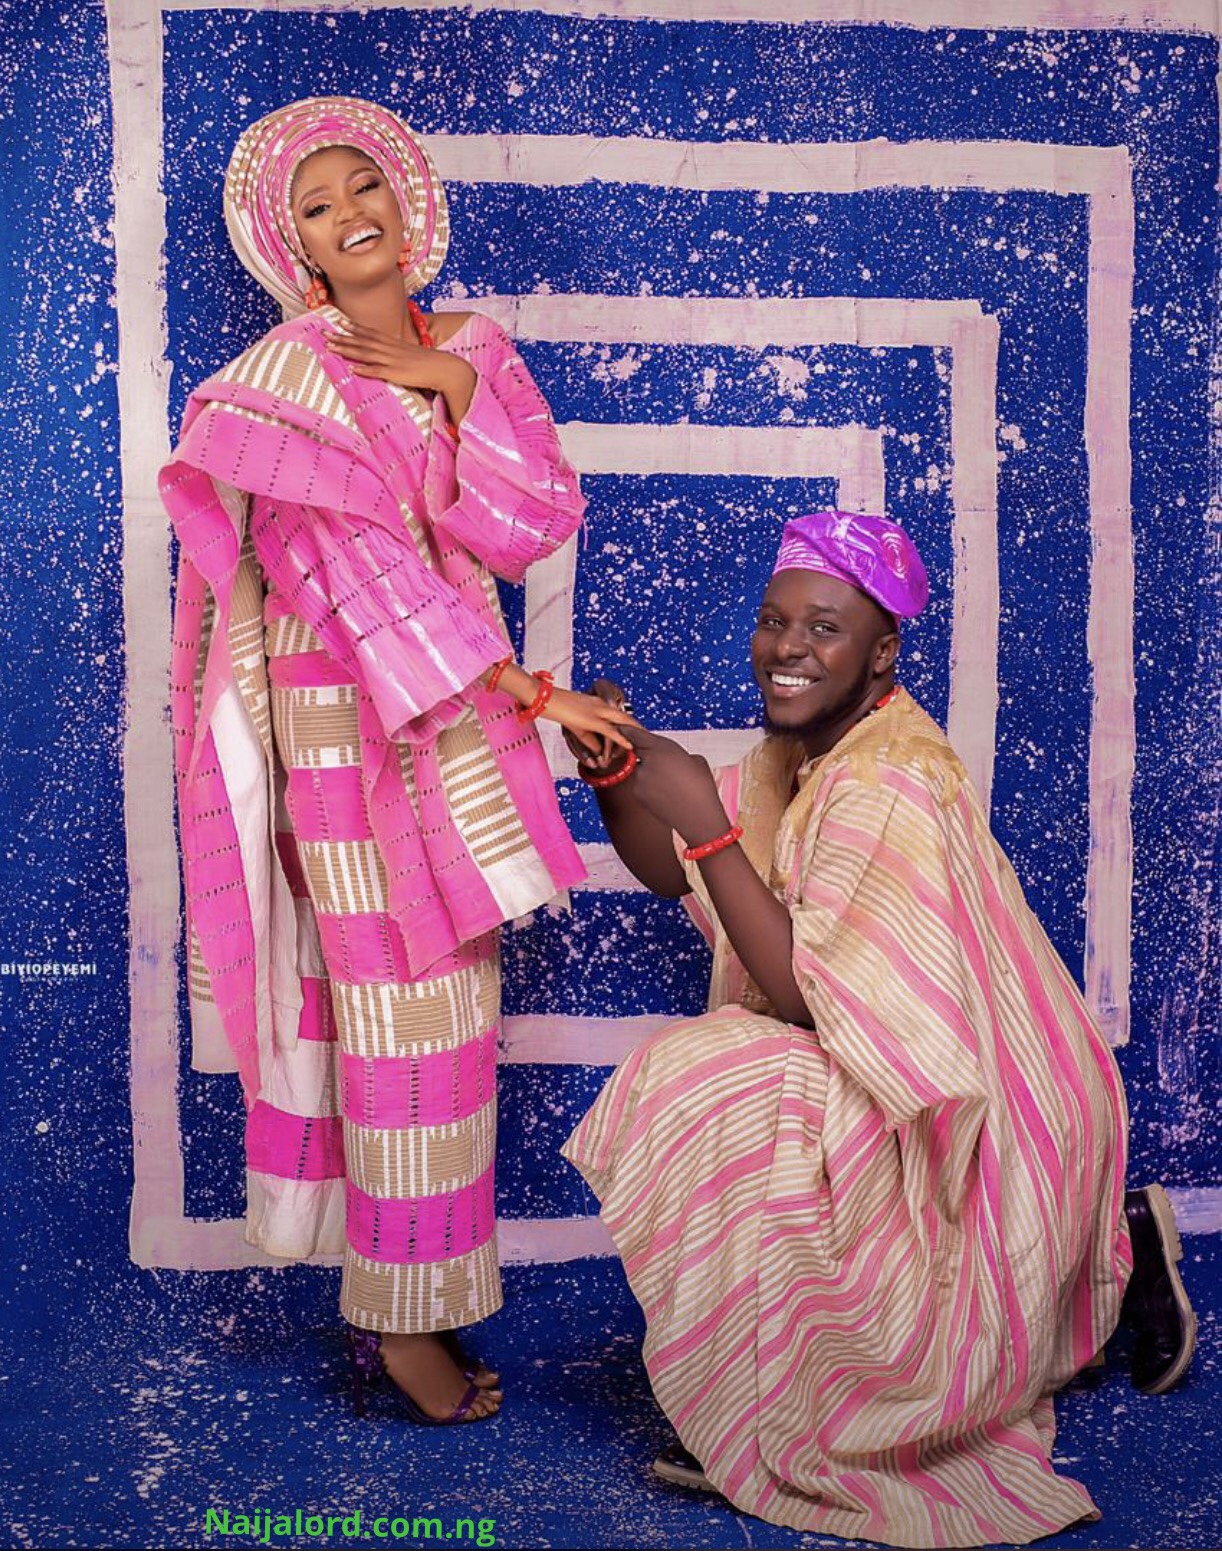 Yoruba Indigenous chanter,Akewi Agbaye fakes Marriage on Social media (Photos)